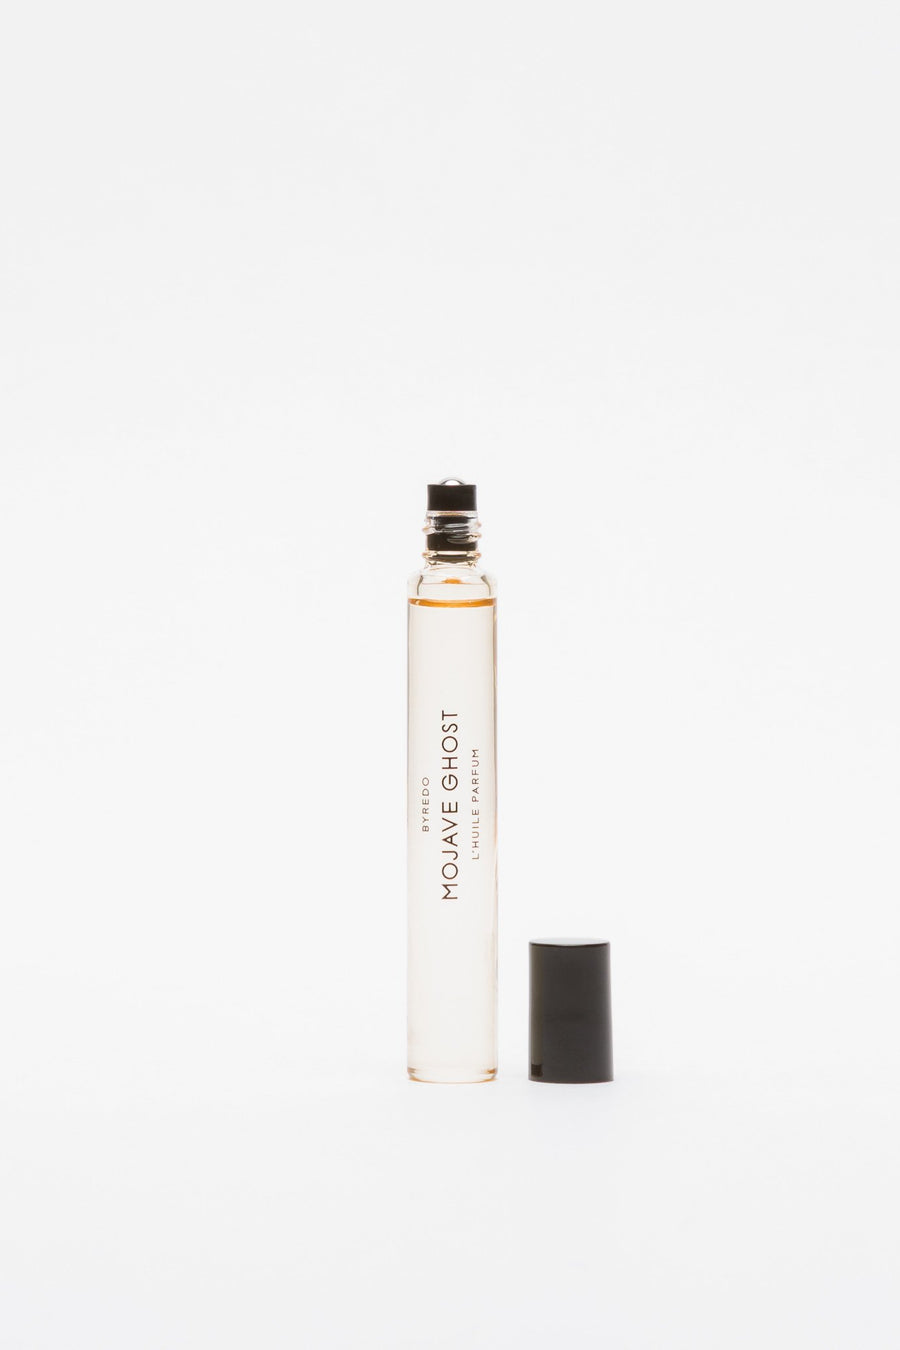 BYREDO Mojave Ghost Roll-on Perfumed Oil 7.5ml - Notre